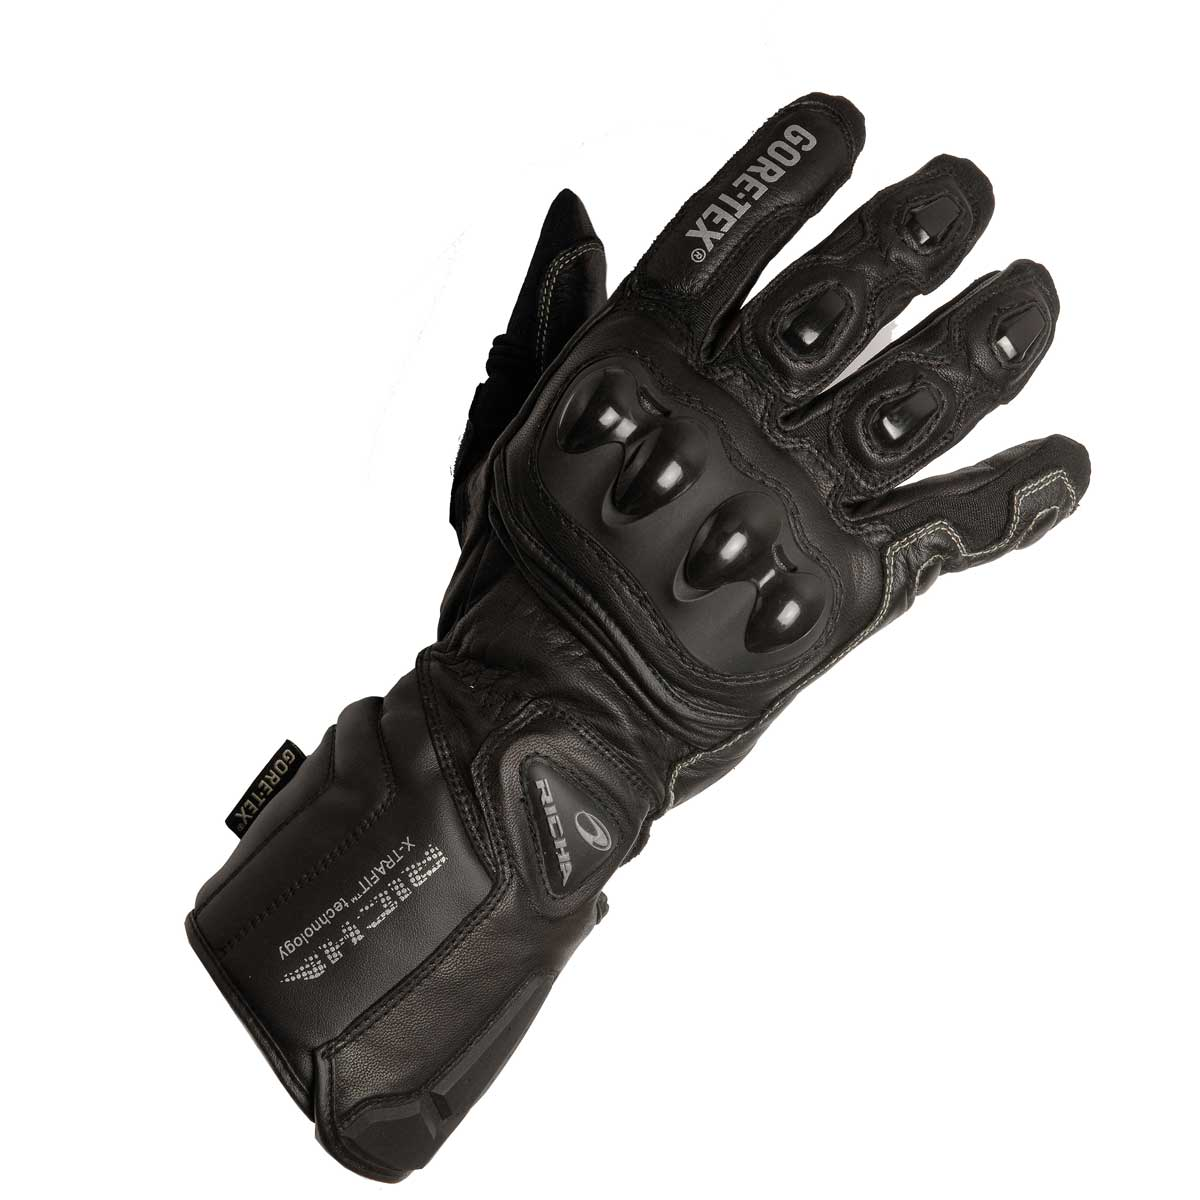 The Richa Extreme Gore-Tex Gloves